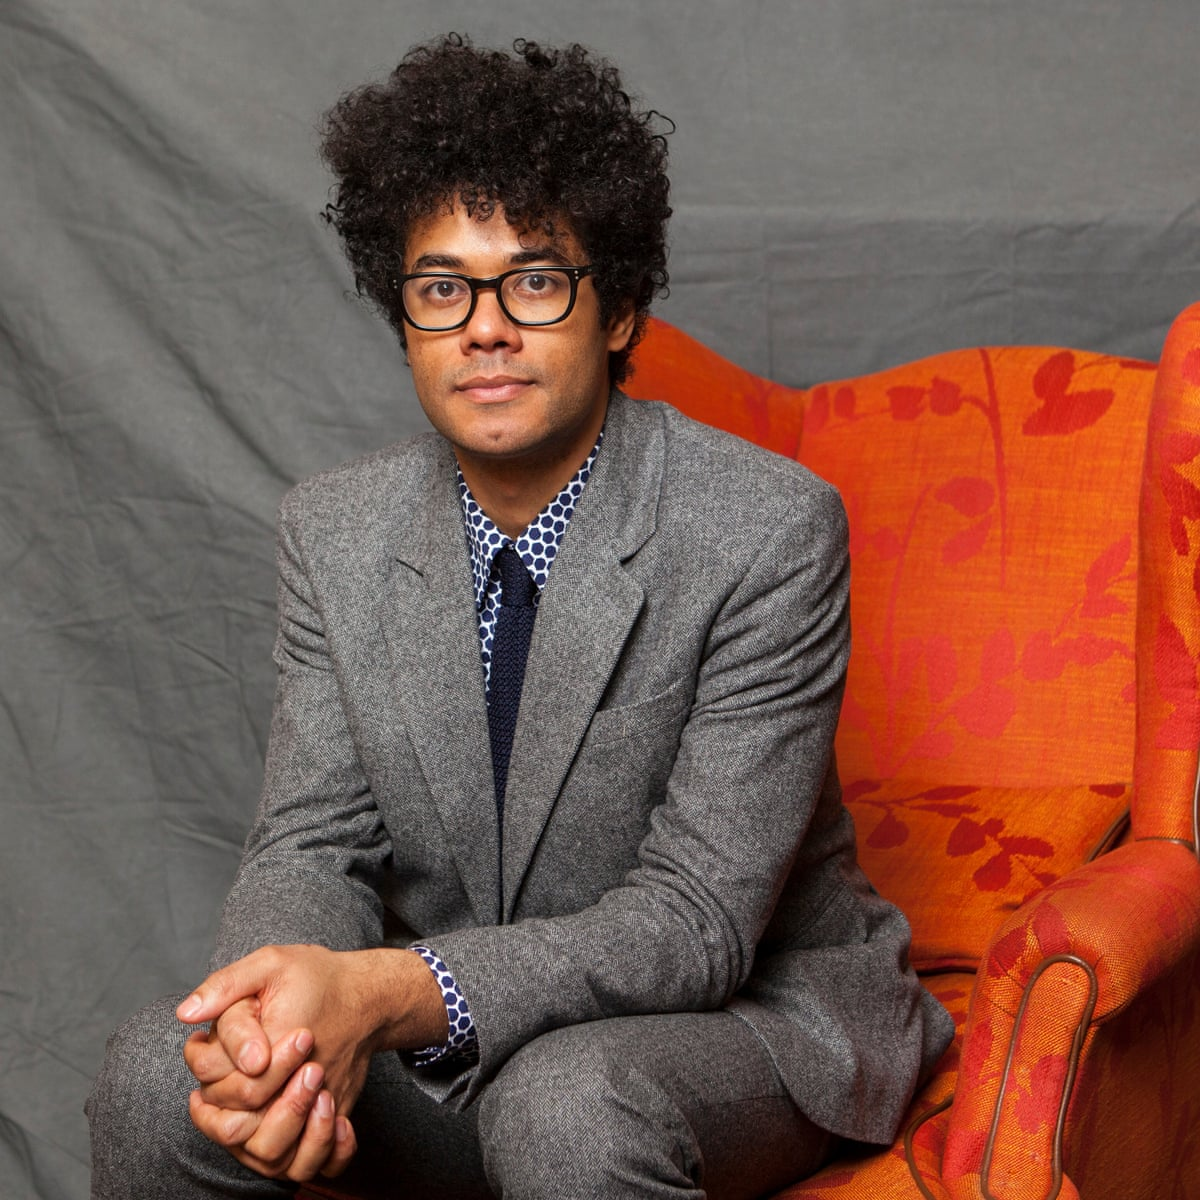 Richard Ayoade I M Even More Humble Than People Expect Life And Style The Guardian